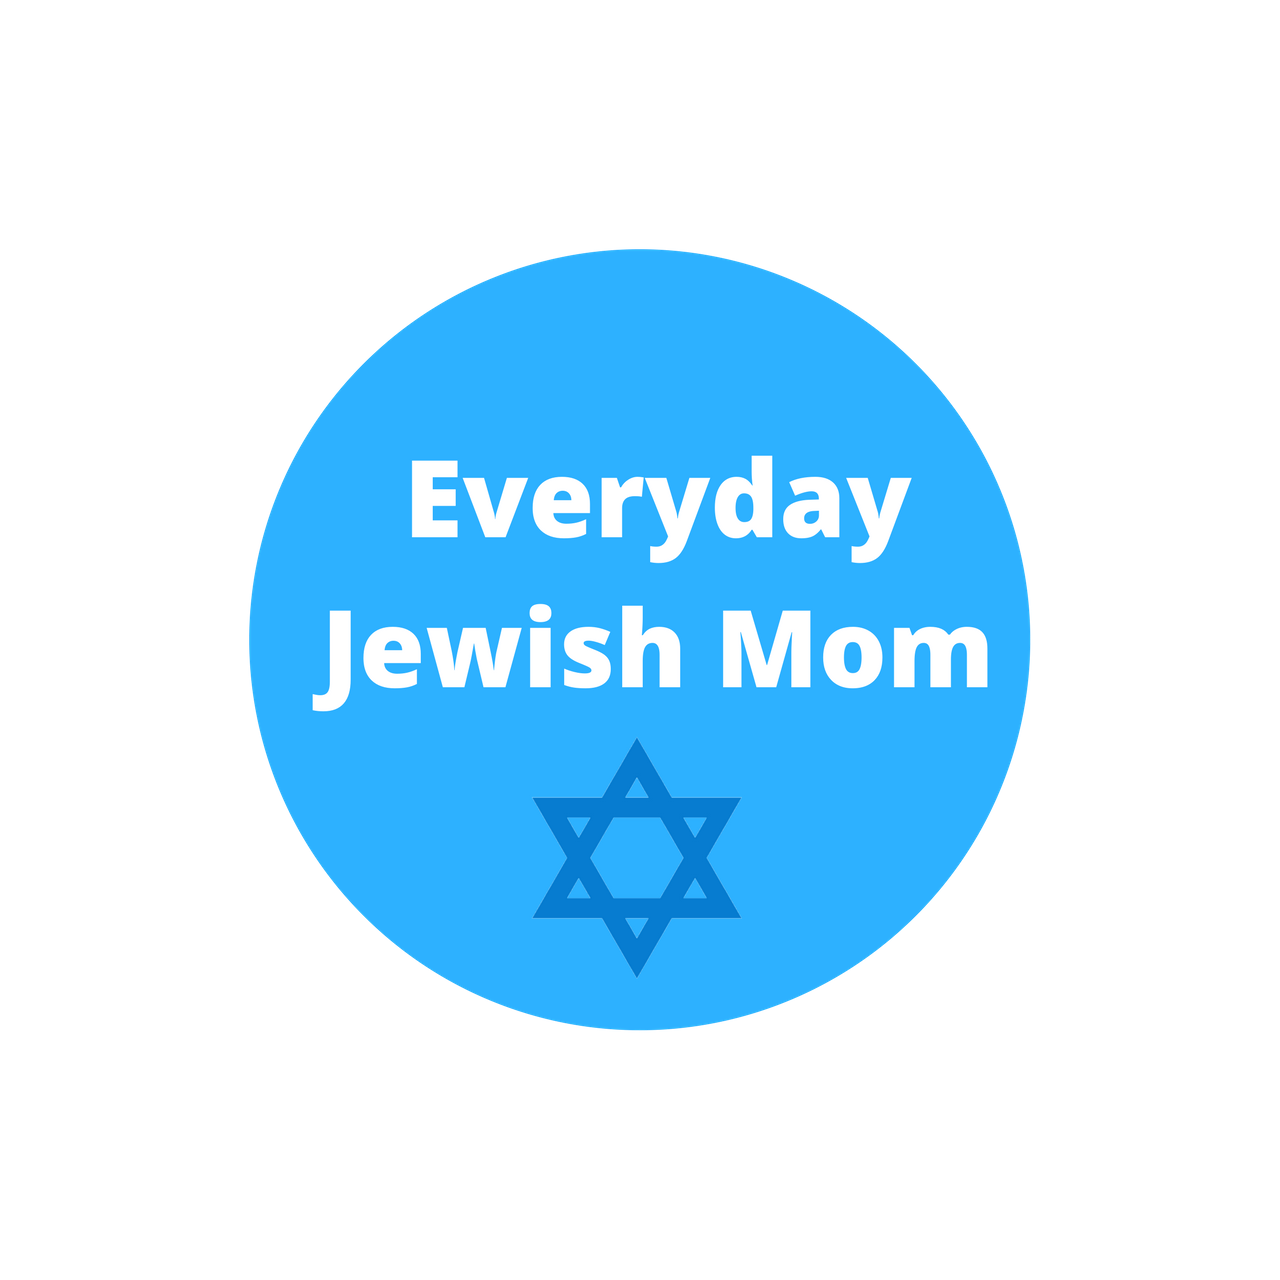 Everyday Jewish Mom